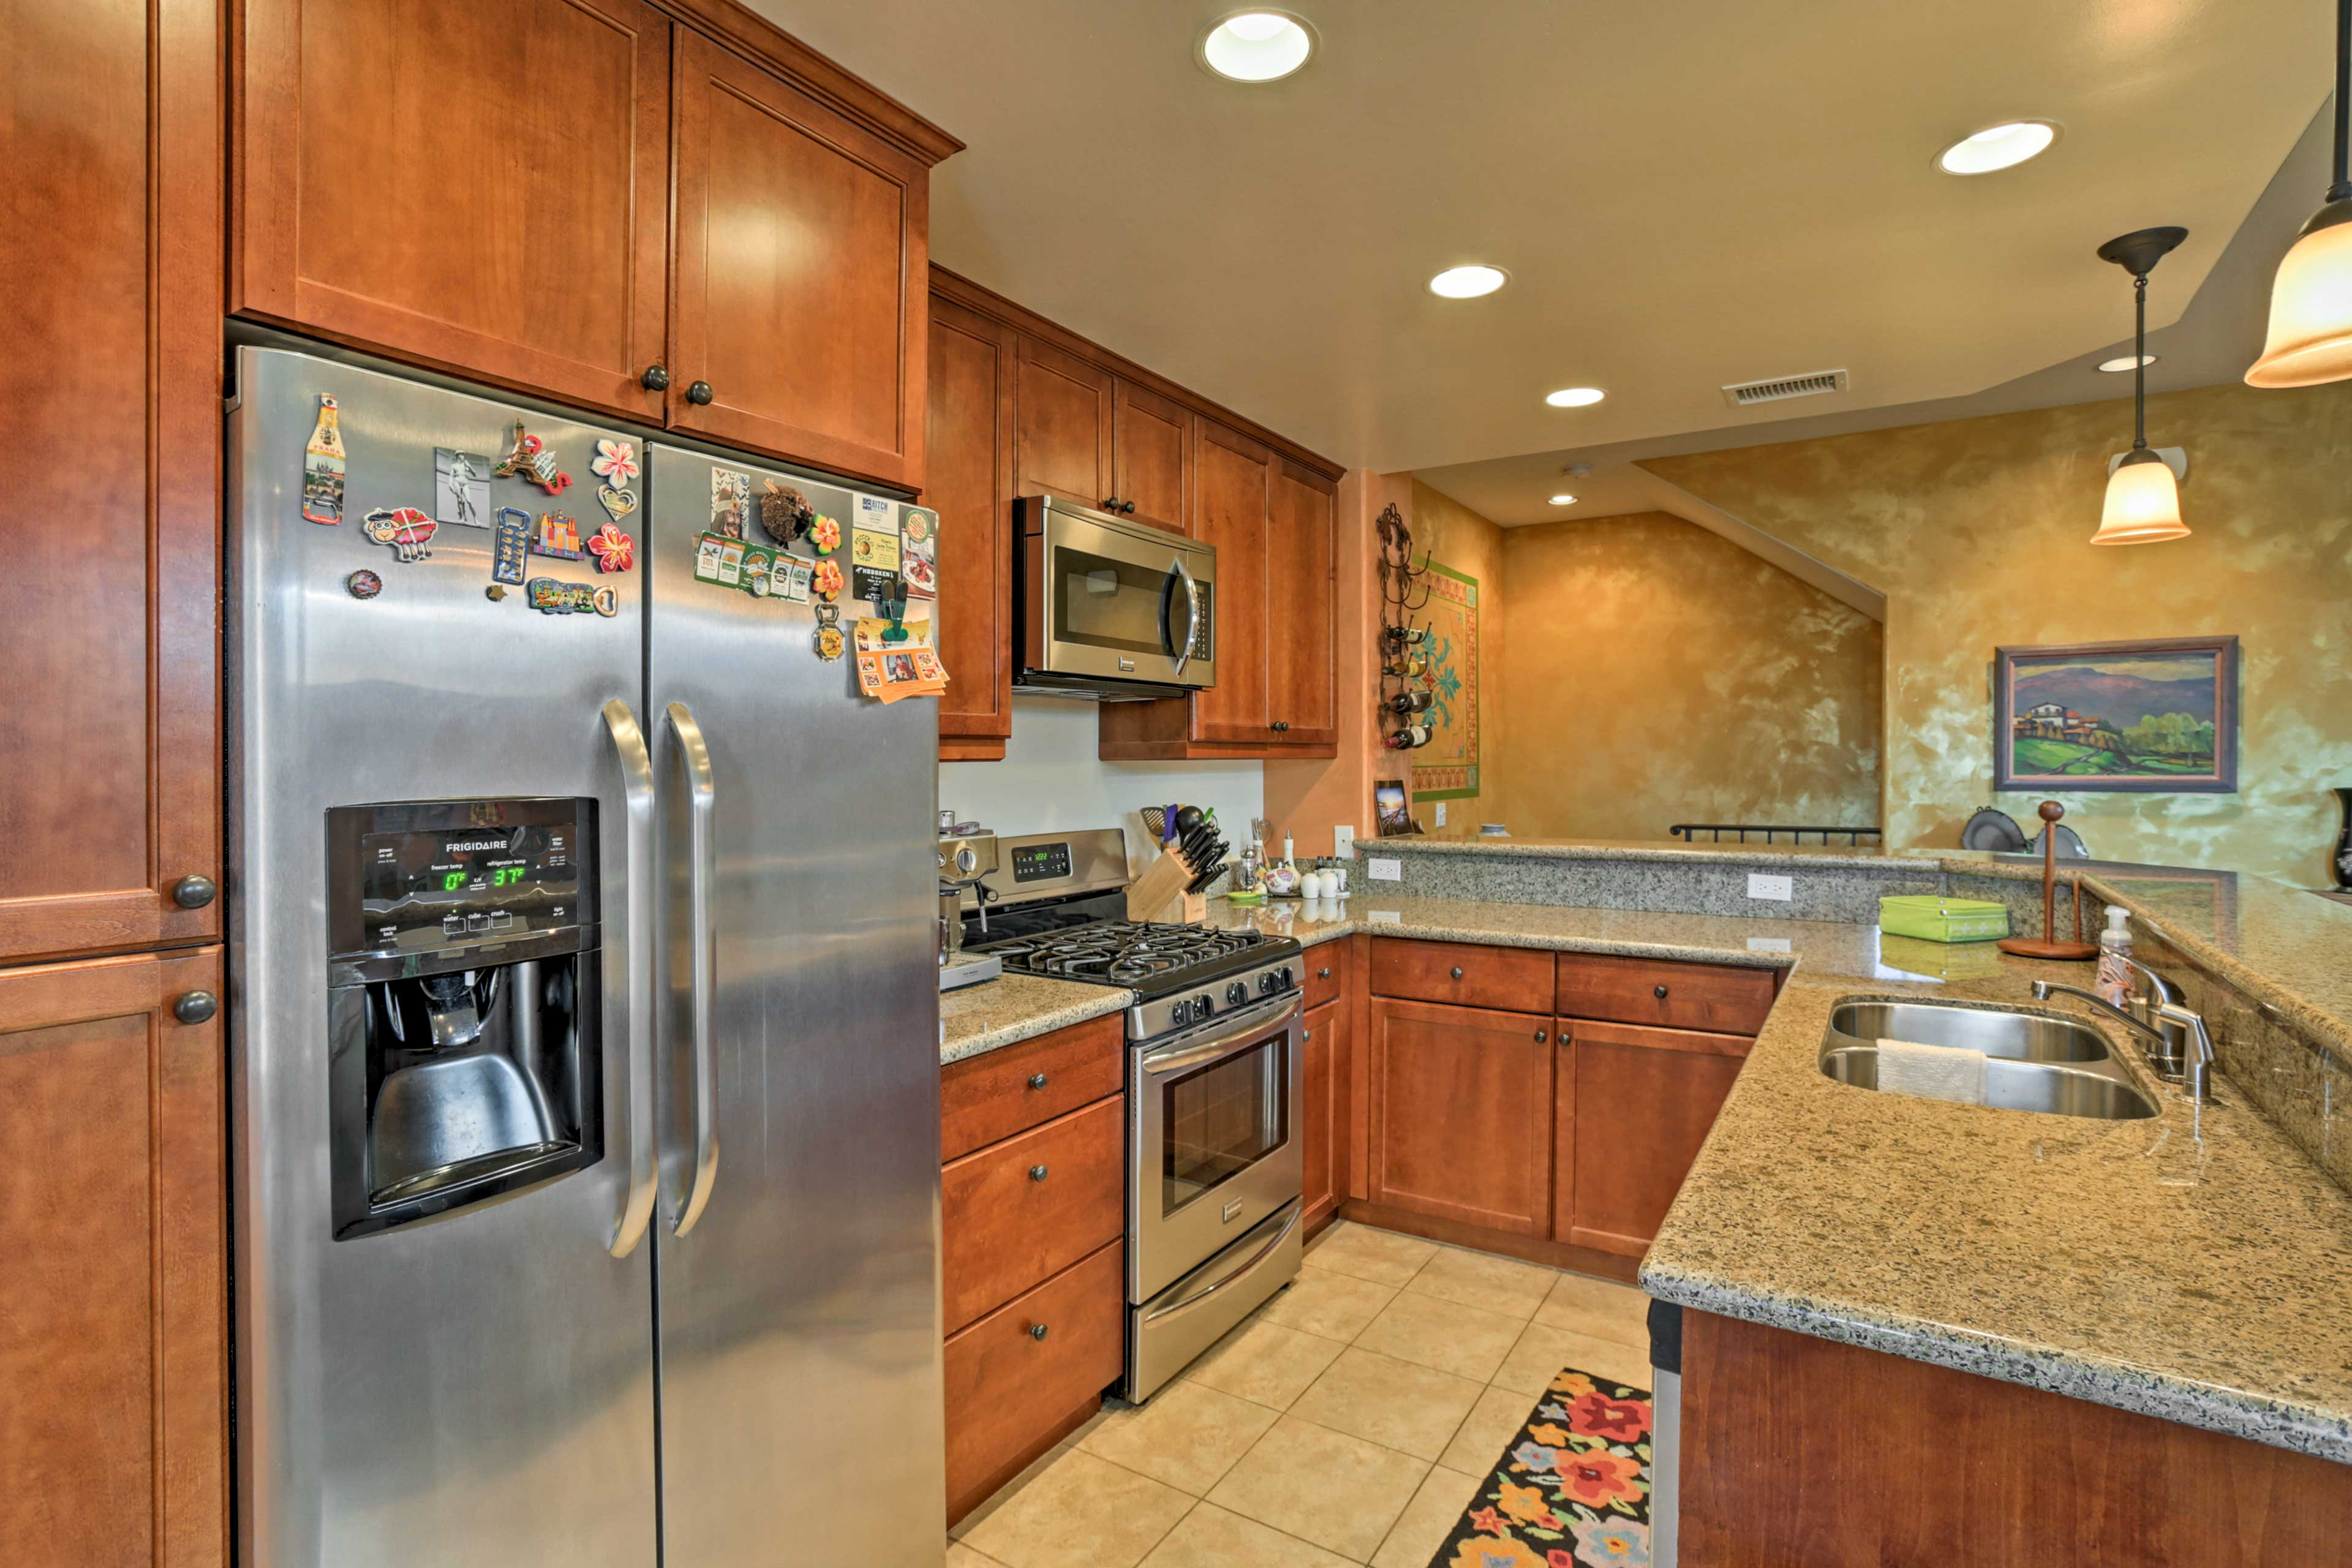 Prepare San Diego-style Mexican cuisine in the fully equipped kitchen.